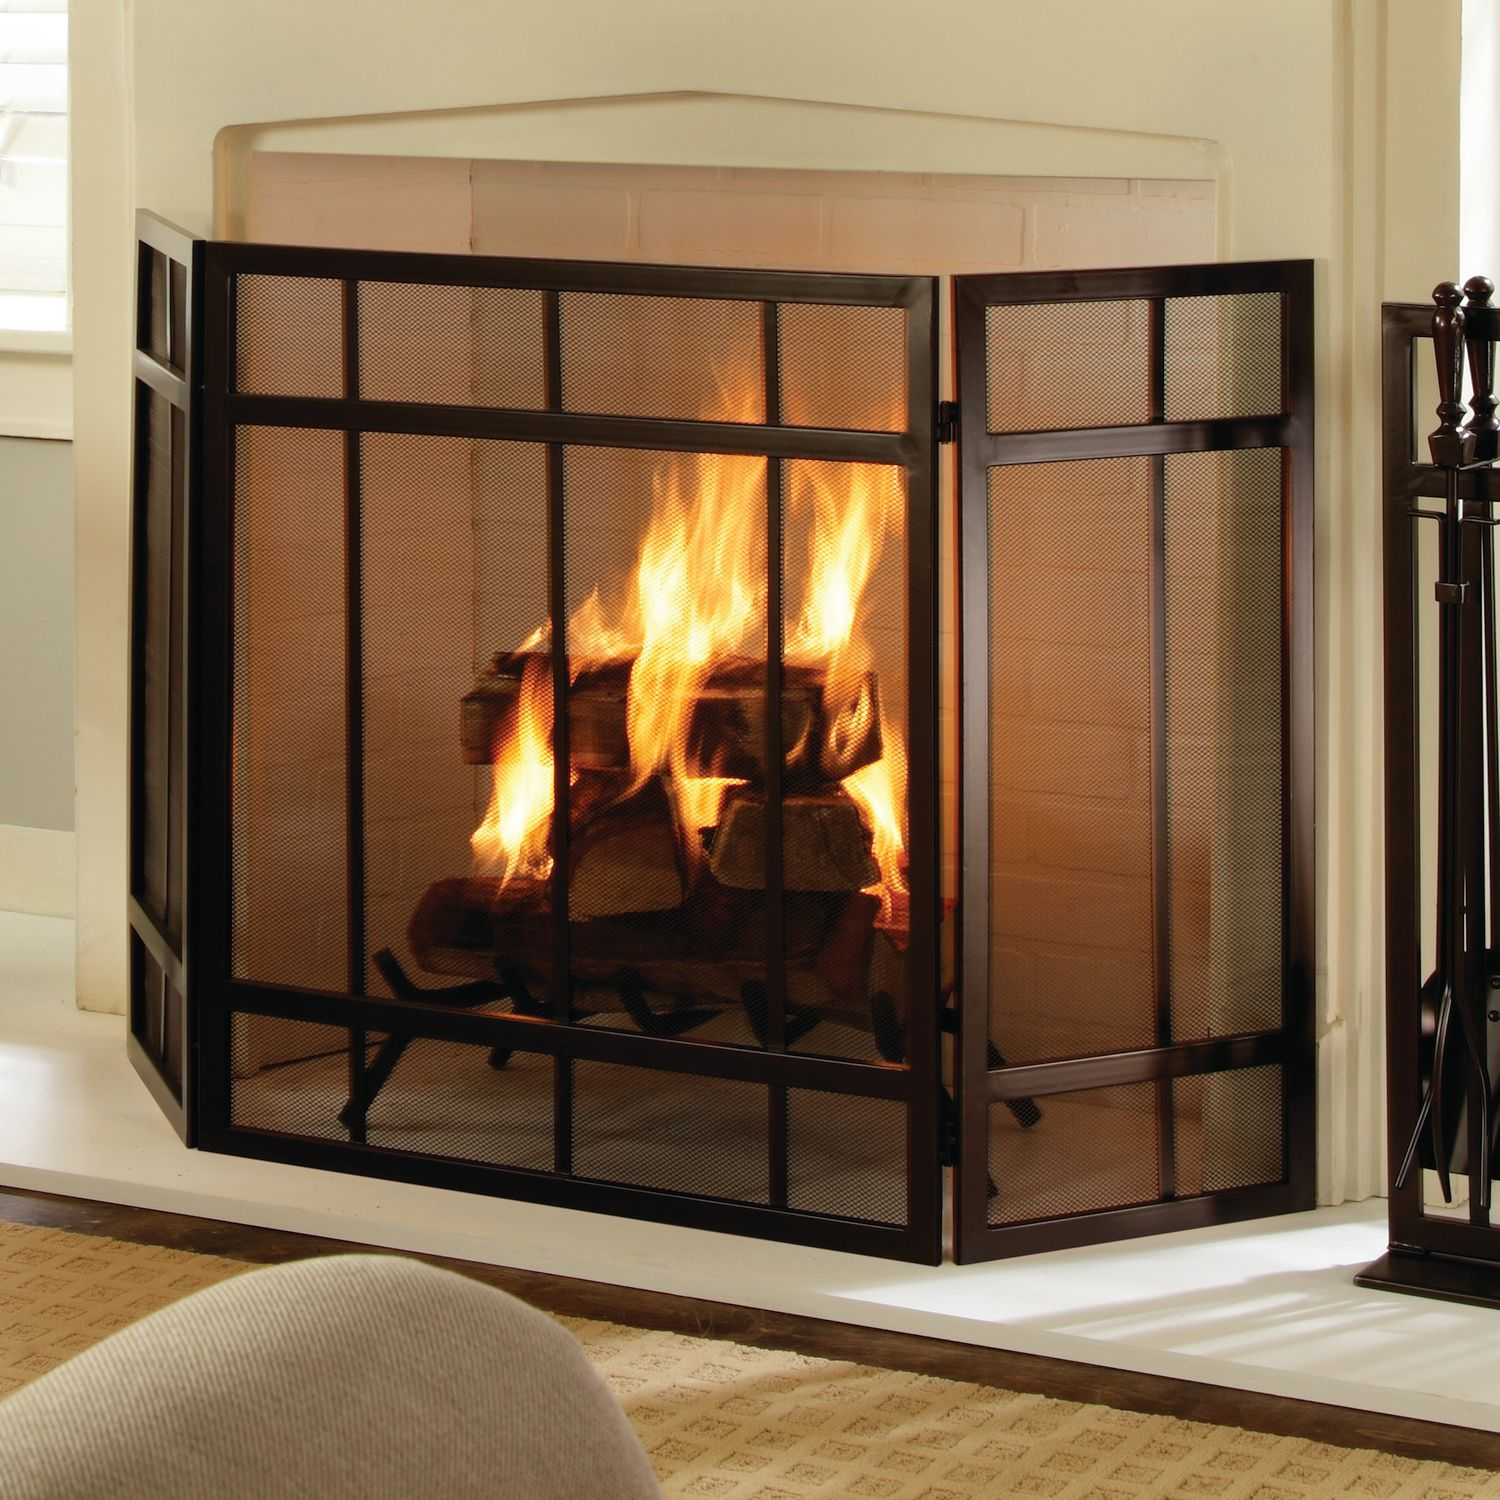 gallery s spark guard screen in hanging fireplaces image x fireplace woodfield